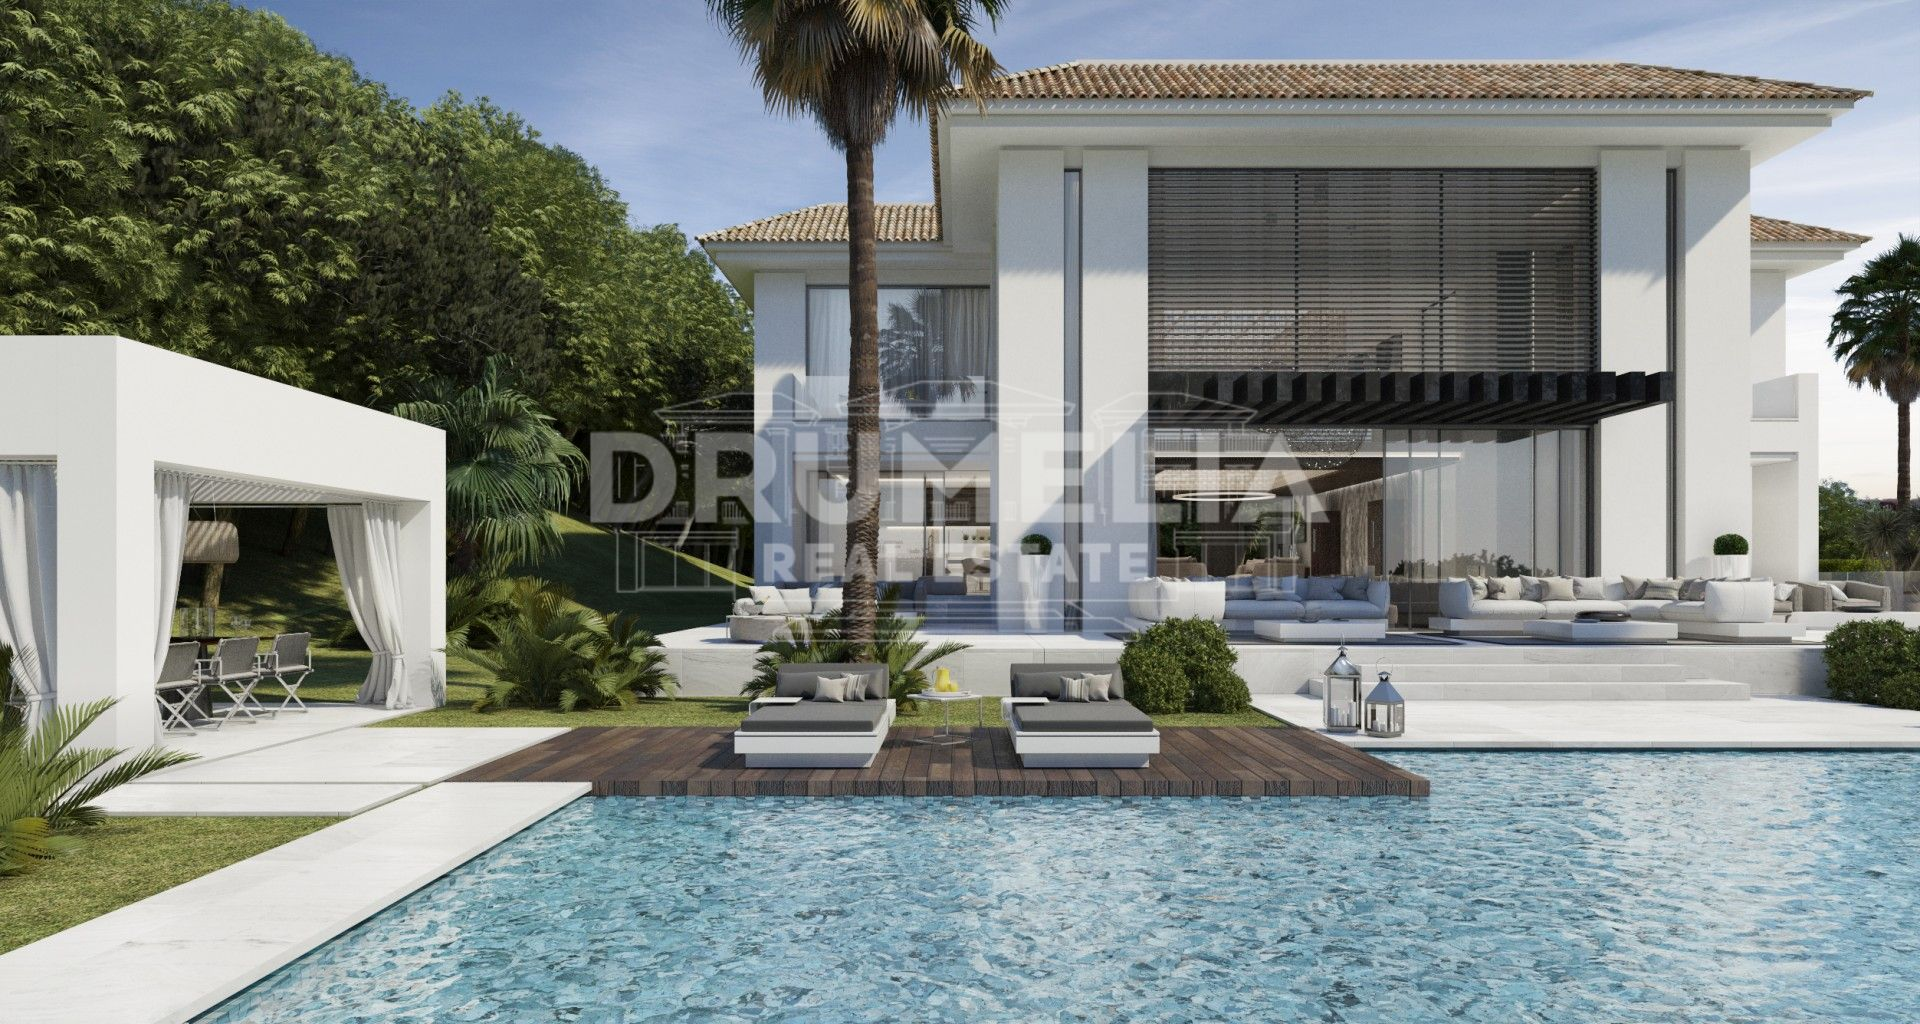 Benahavis, Extraordinary Designer State of Art Modern Luxury Villa, El Madroñal, Benahavis